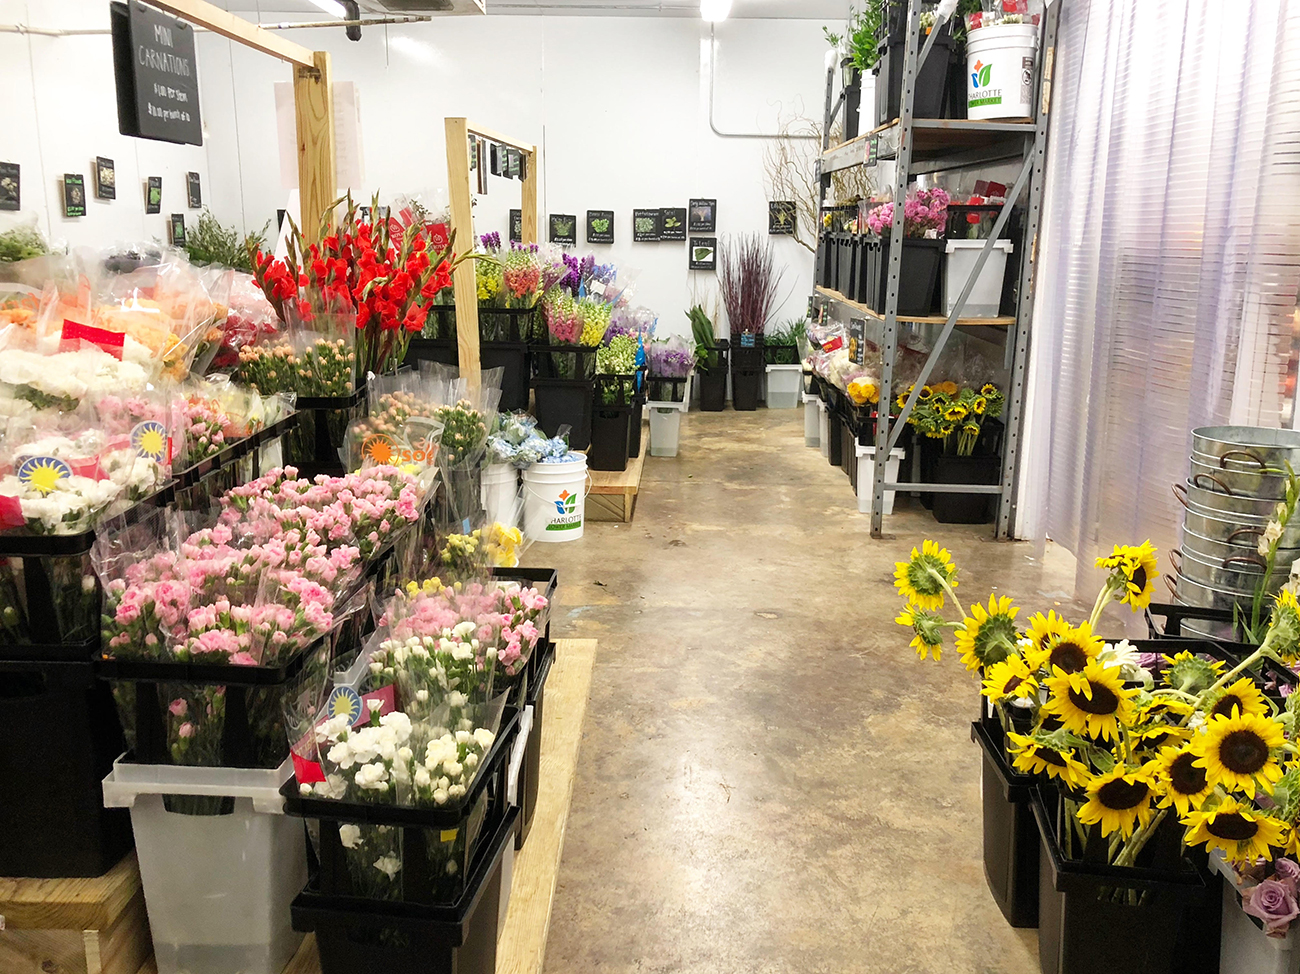 This wholesale flower market will teach you to DIY your own wedding ...